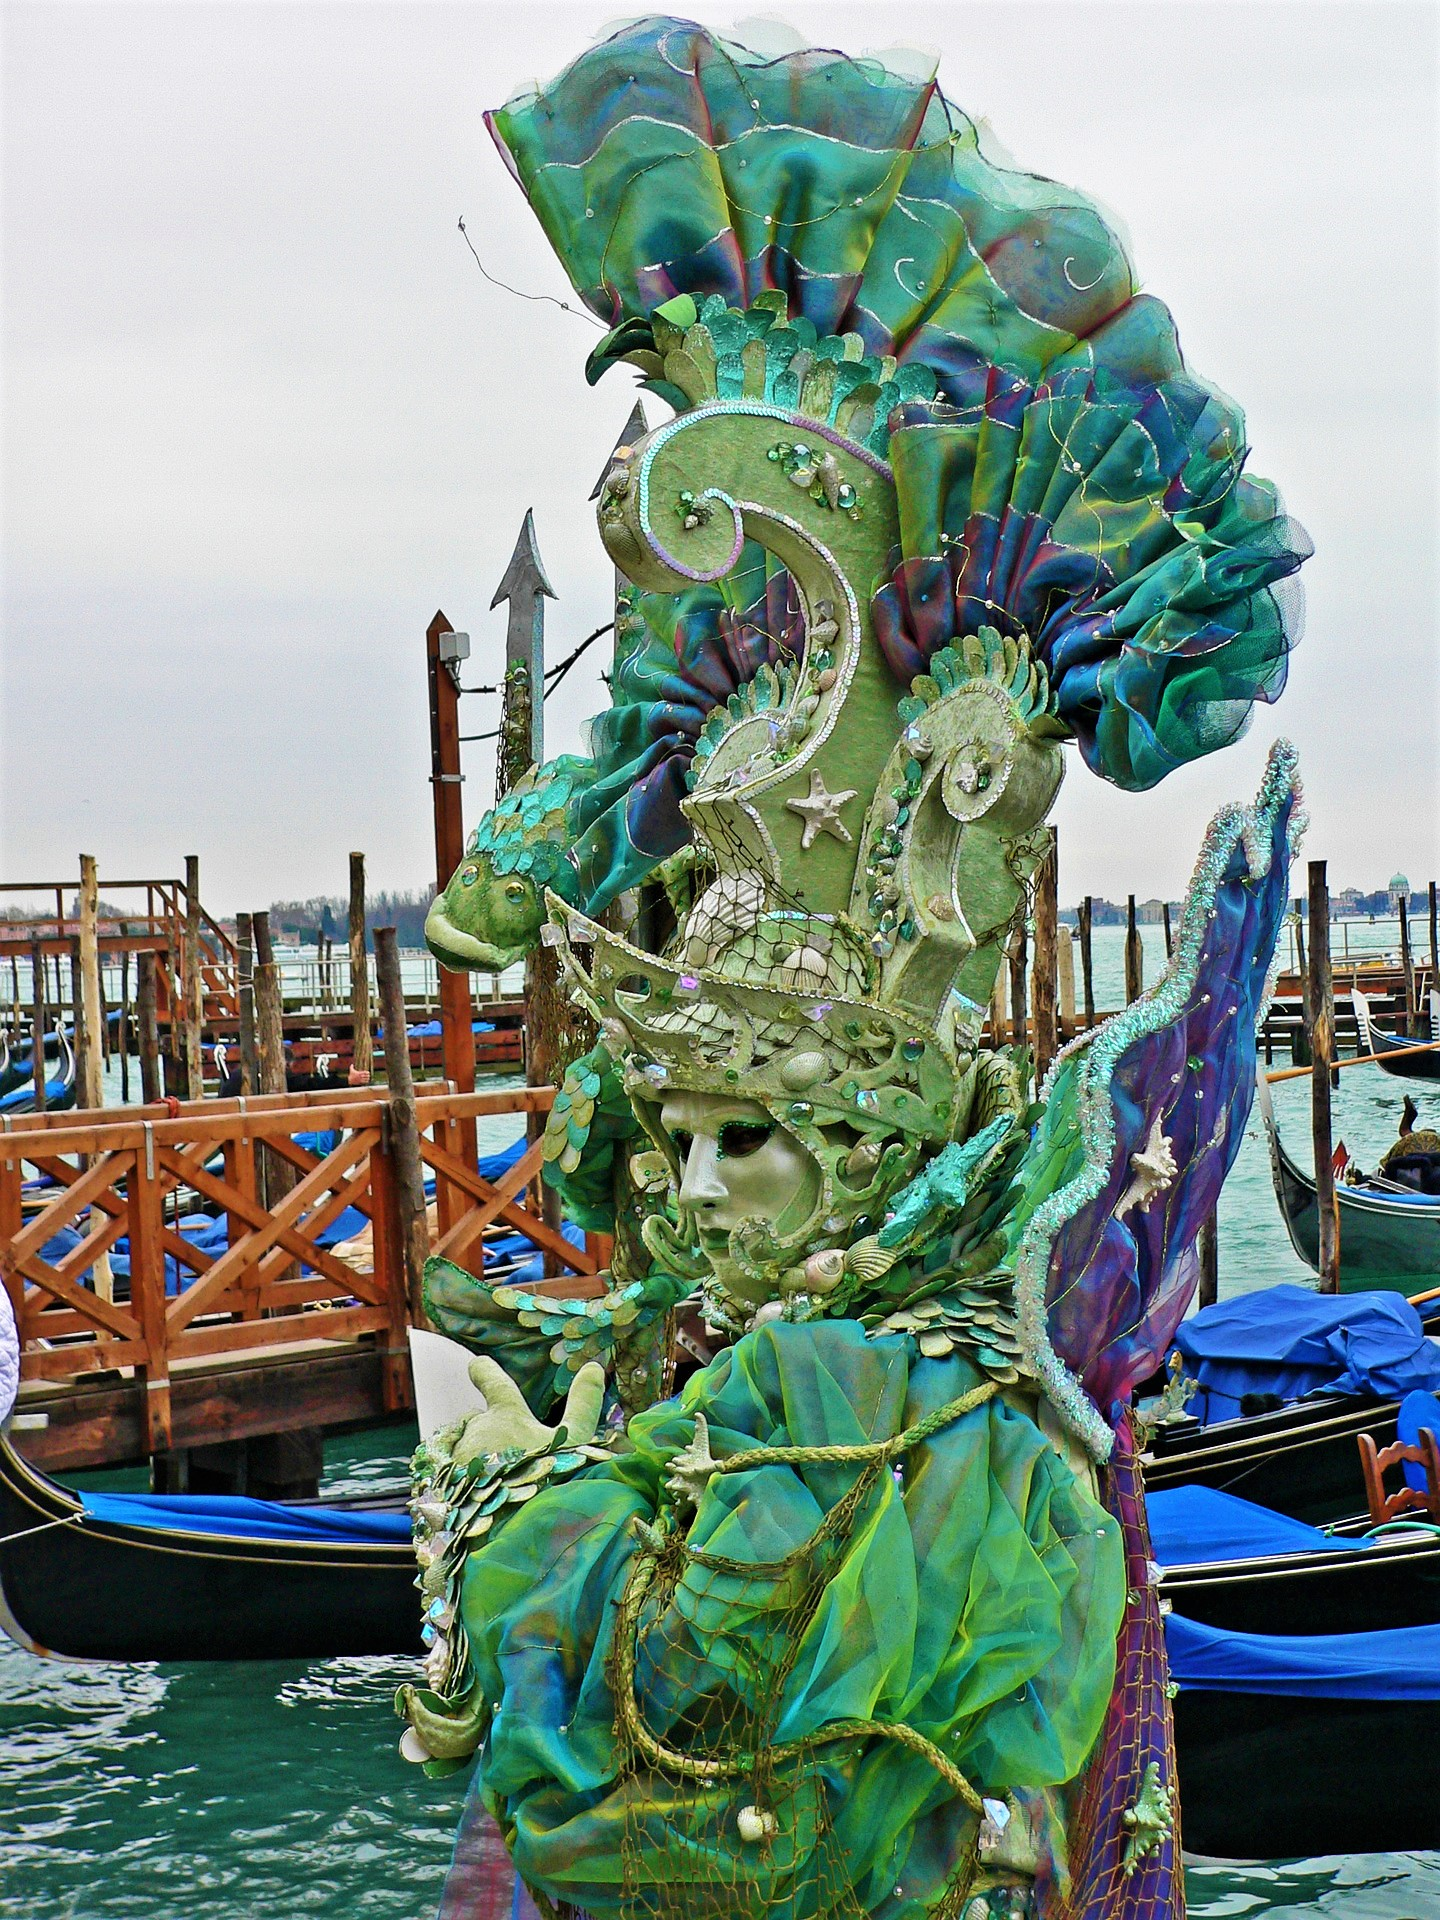 Venetian carnival outfits are true artpieces